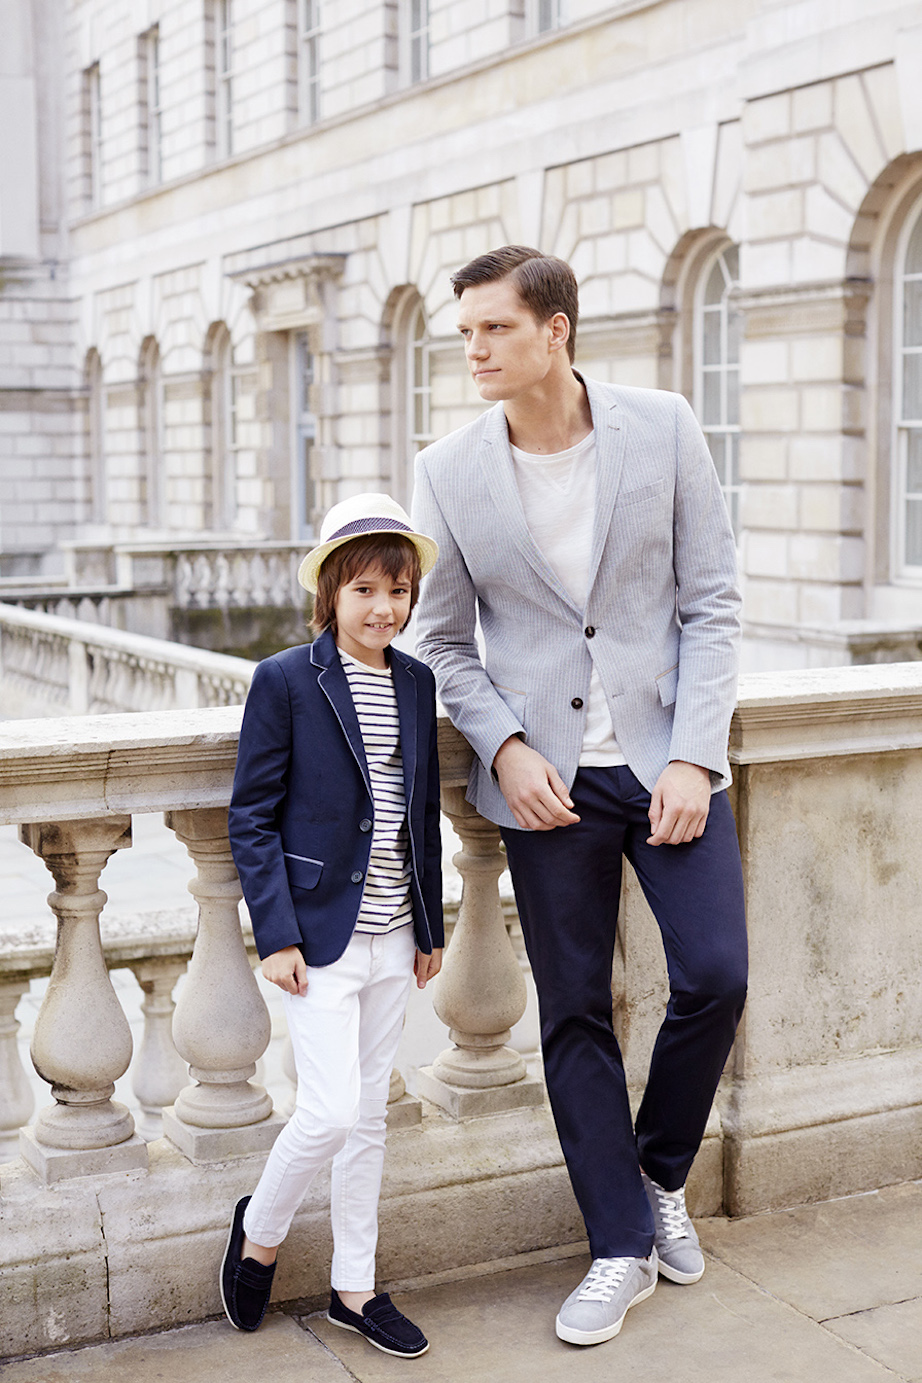 River Island Does Summer Tailoring for Latest Men's Campaign